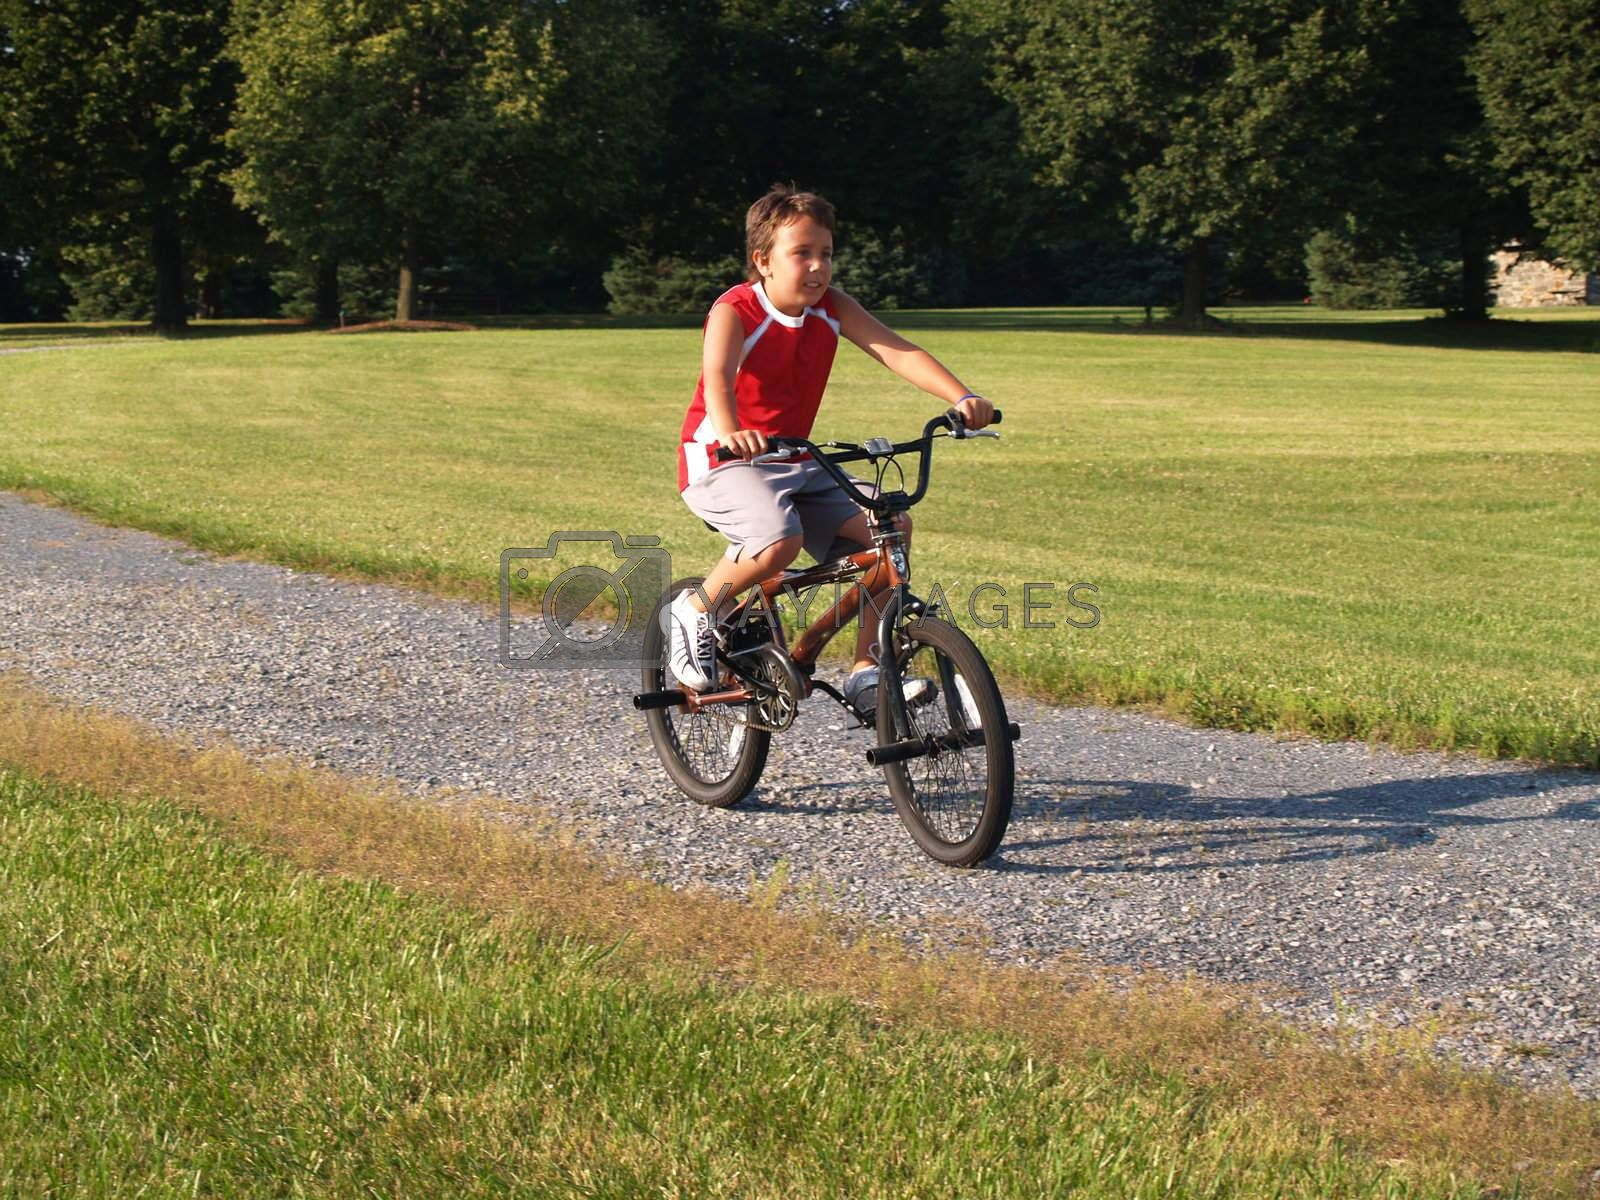 young boy riding a bike in a park